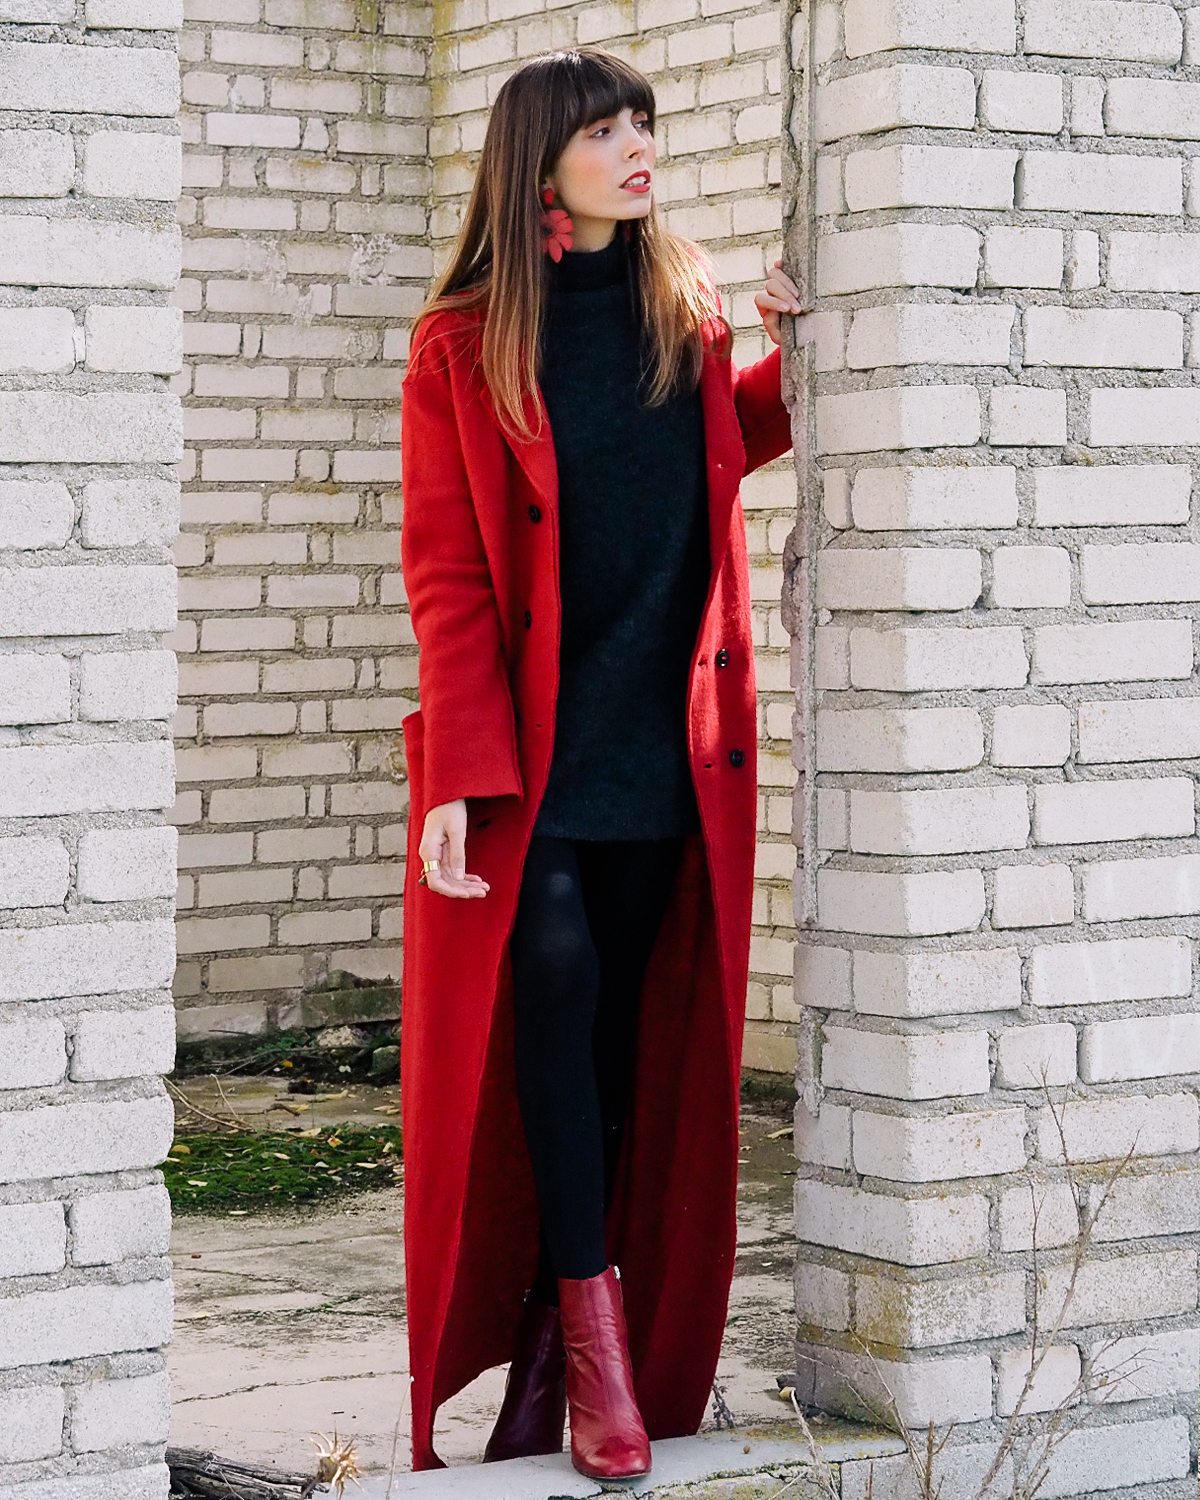 yerse-new-year-outfit-anna-ponsa-28